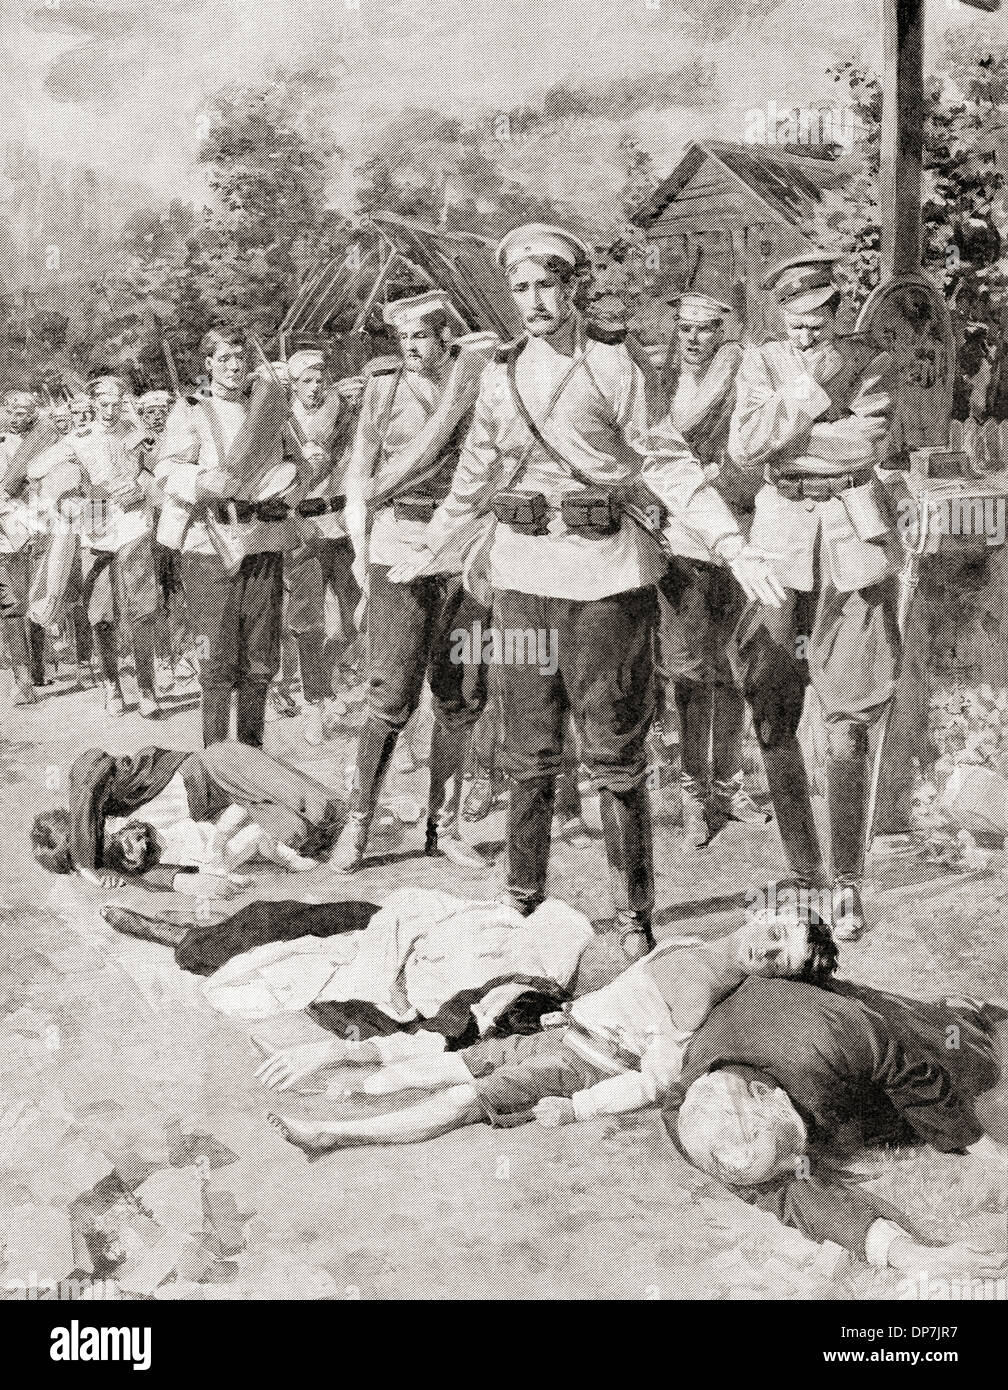 Russian soldiers look in horror at the bodies of Russian civilians killed by the Germans during WWI. - Stock Image